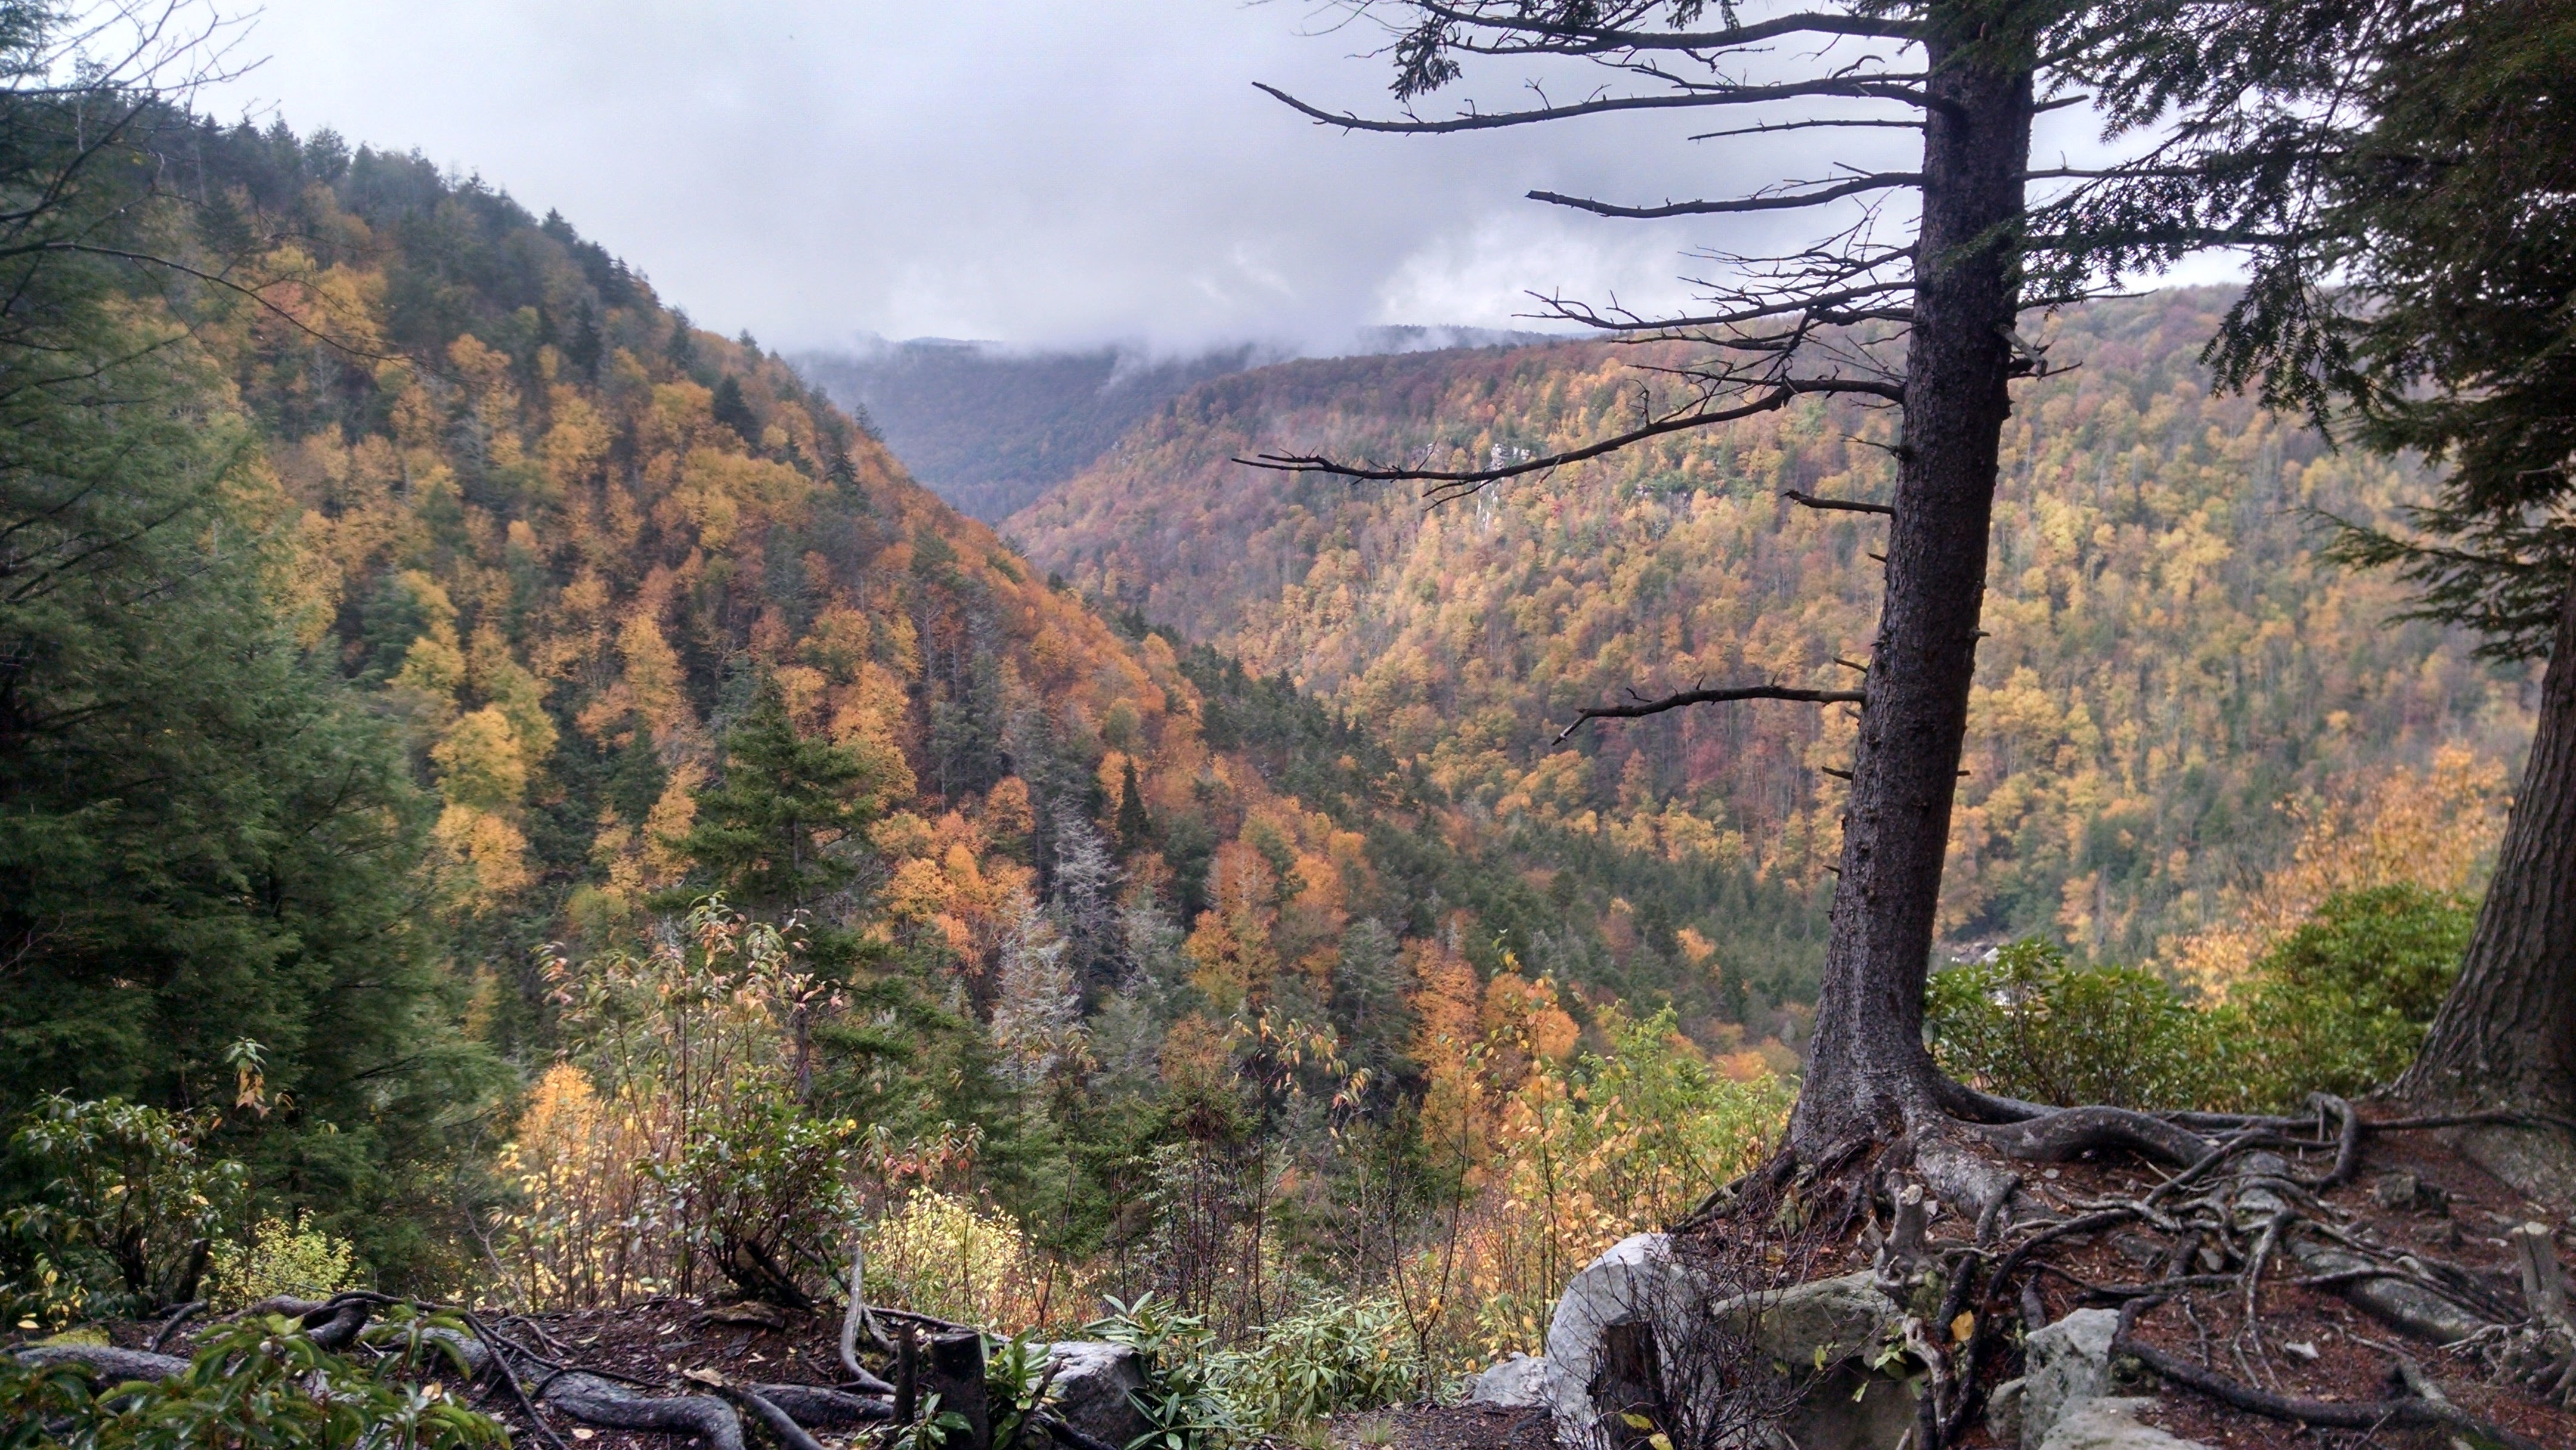 Overlook at Blackwater Canyon in fall foliage